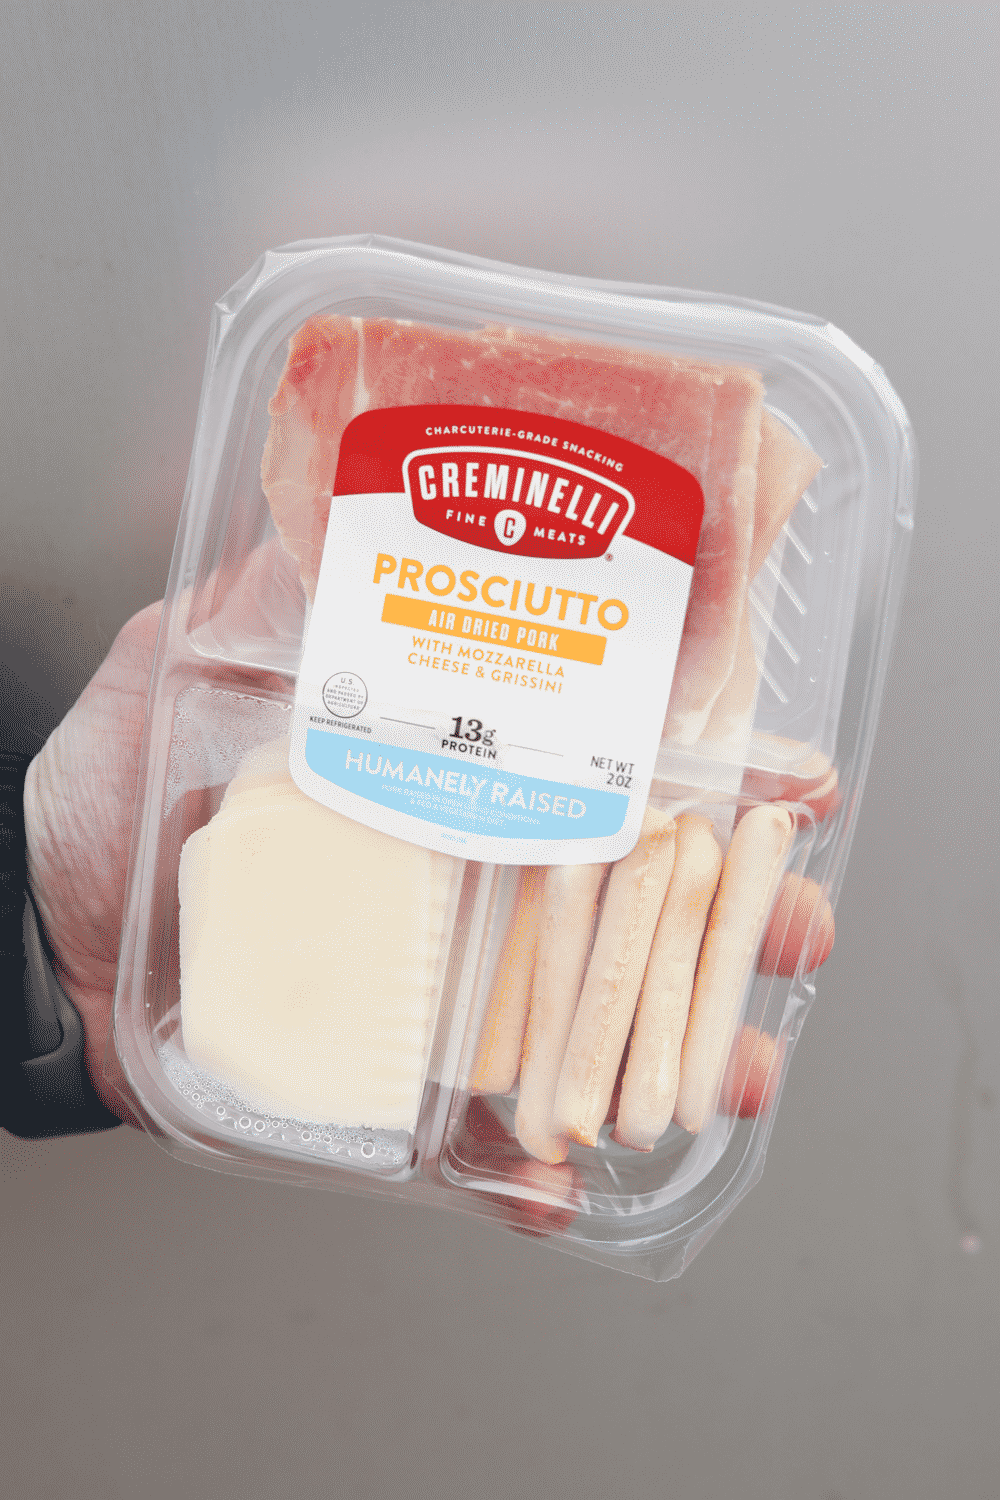 A hand holding a container of prosciutto, cheese and grissini.